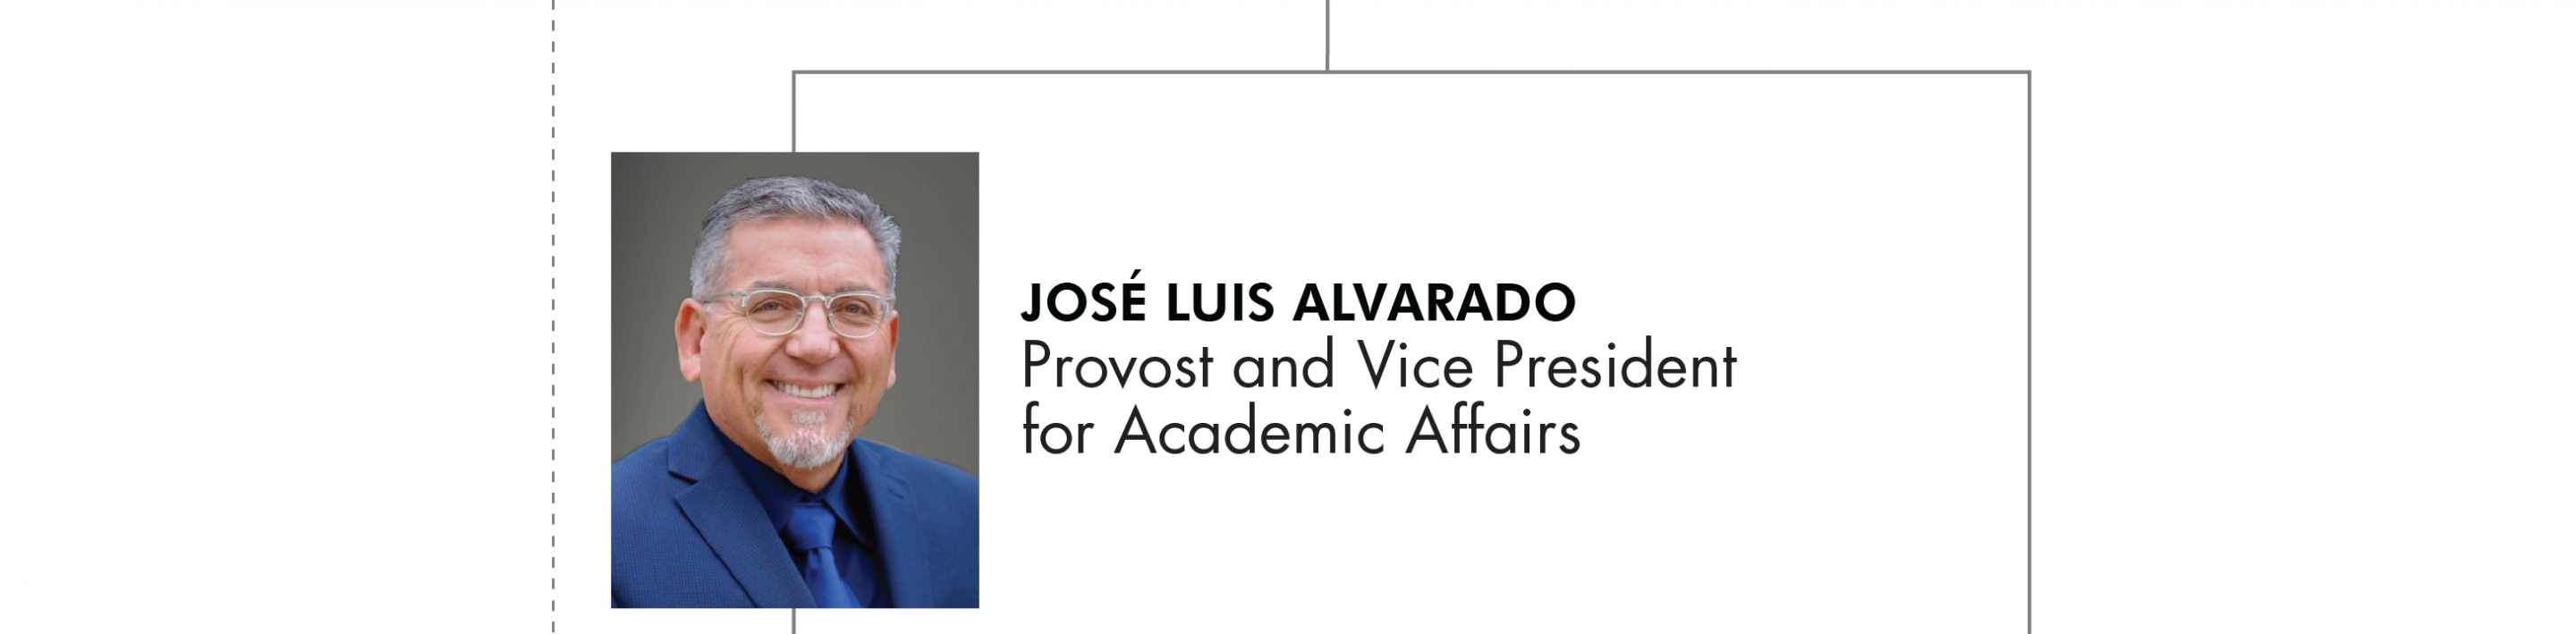 Jose Luis Alvarado Provost and Vice President for Academic Affairs